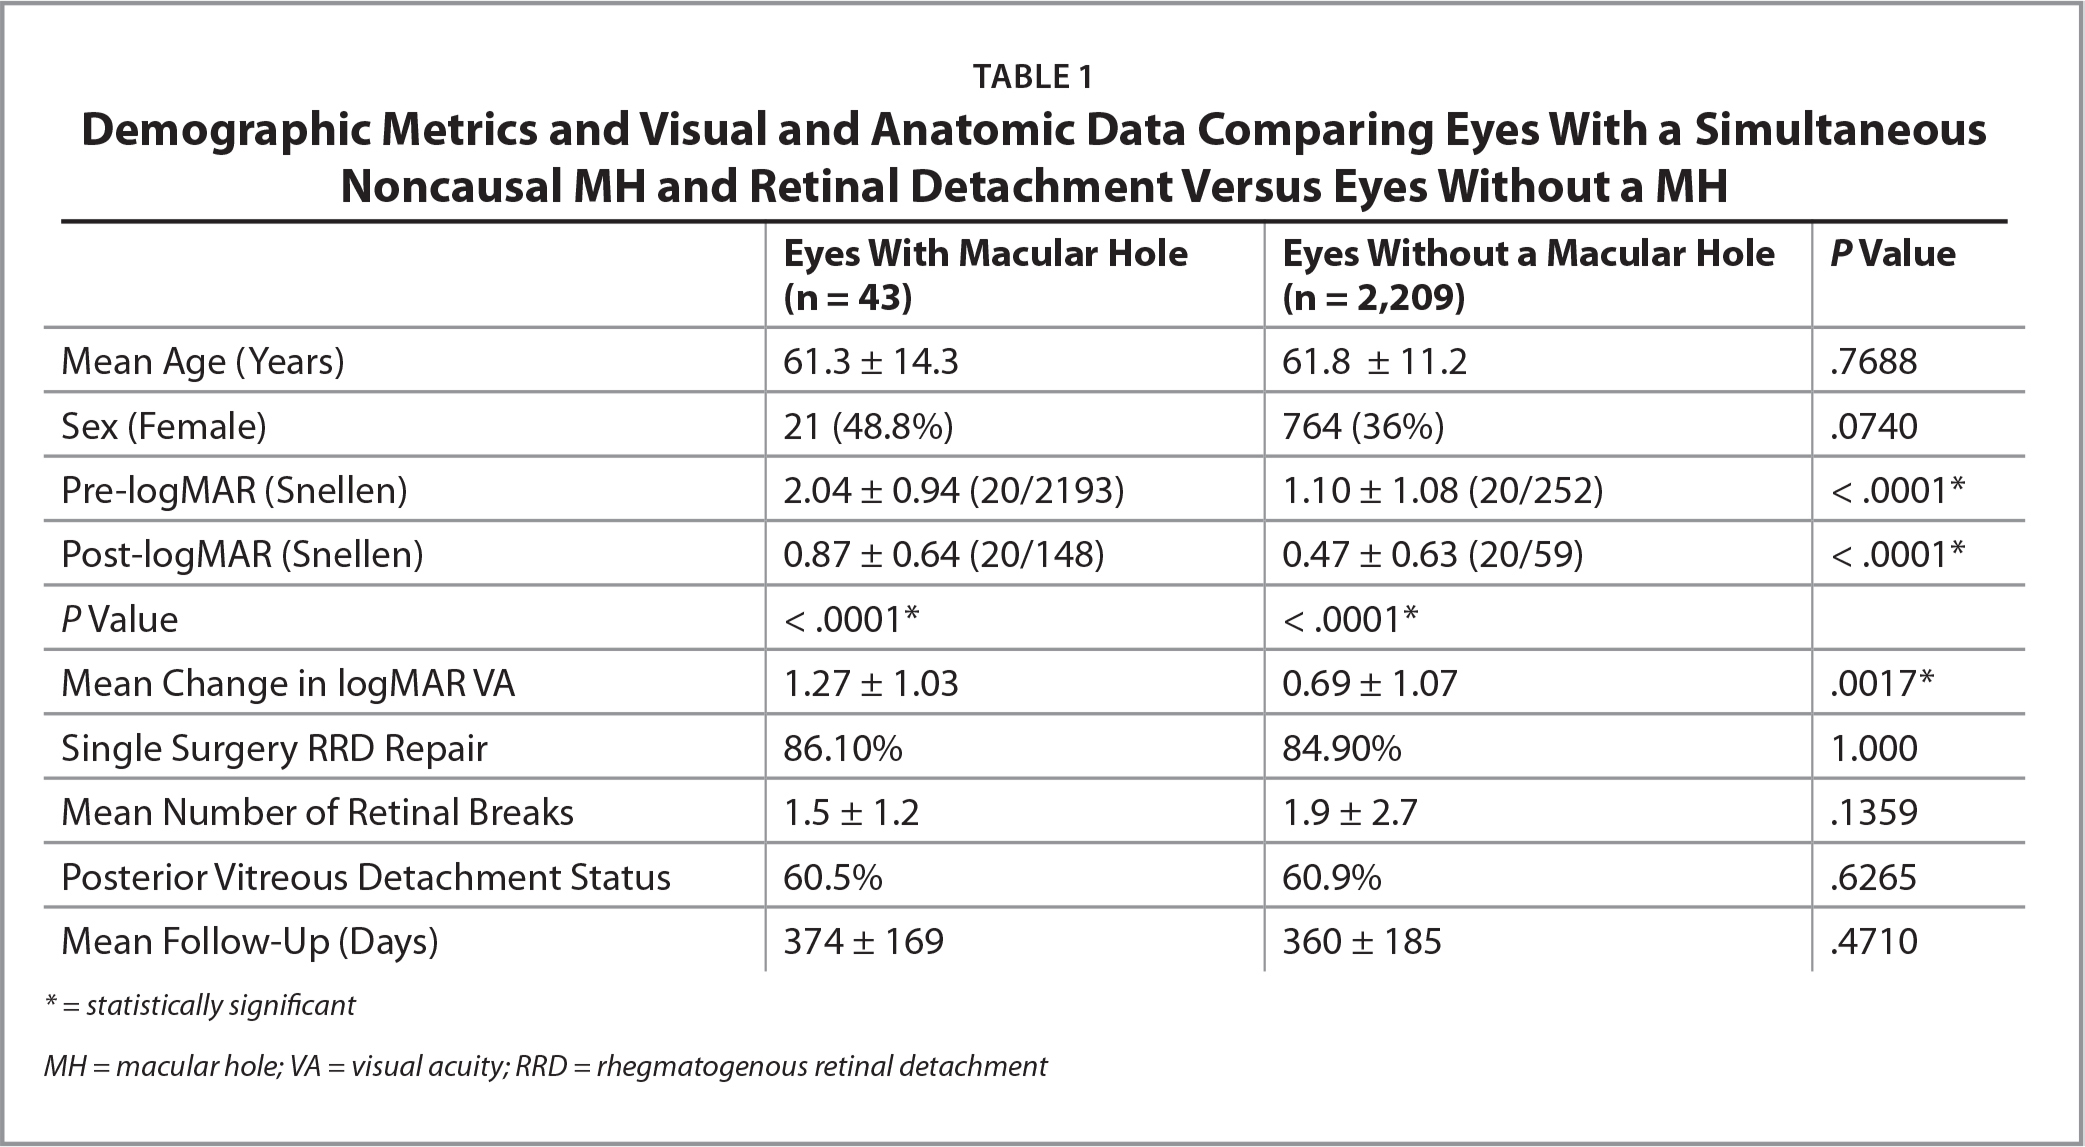 Demographic Metrics and Visual and Anatomic Data Comparing Eyes With a Simultaneous Noncausal MH and Retinal Detachment Versus Eyes Without a MH